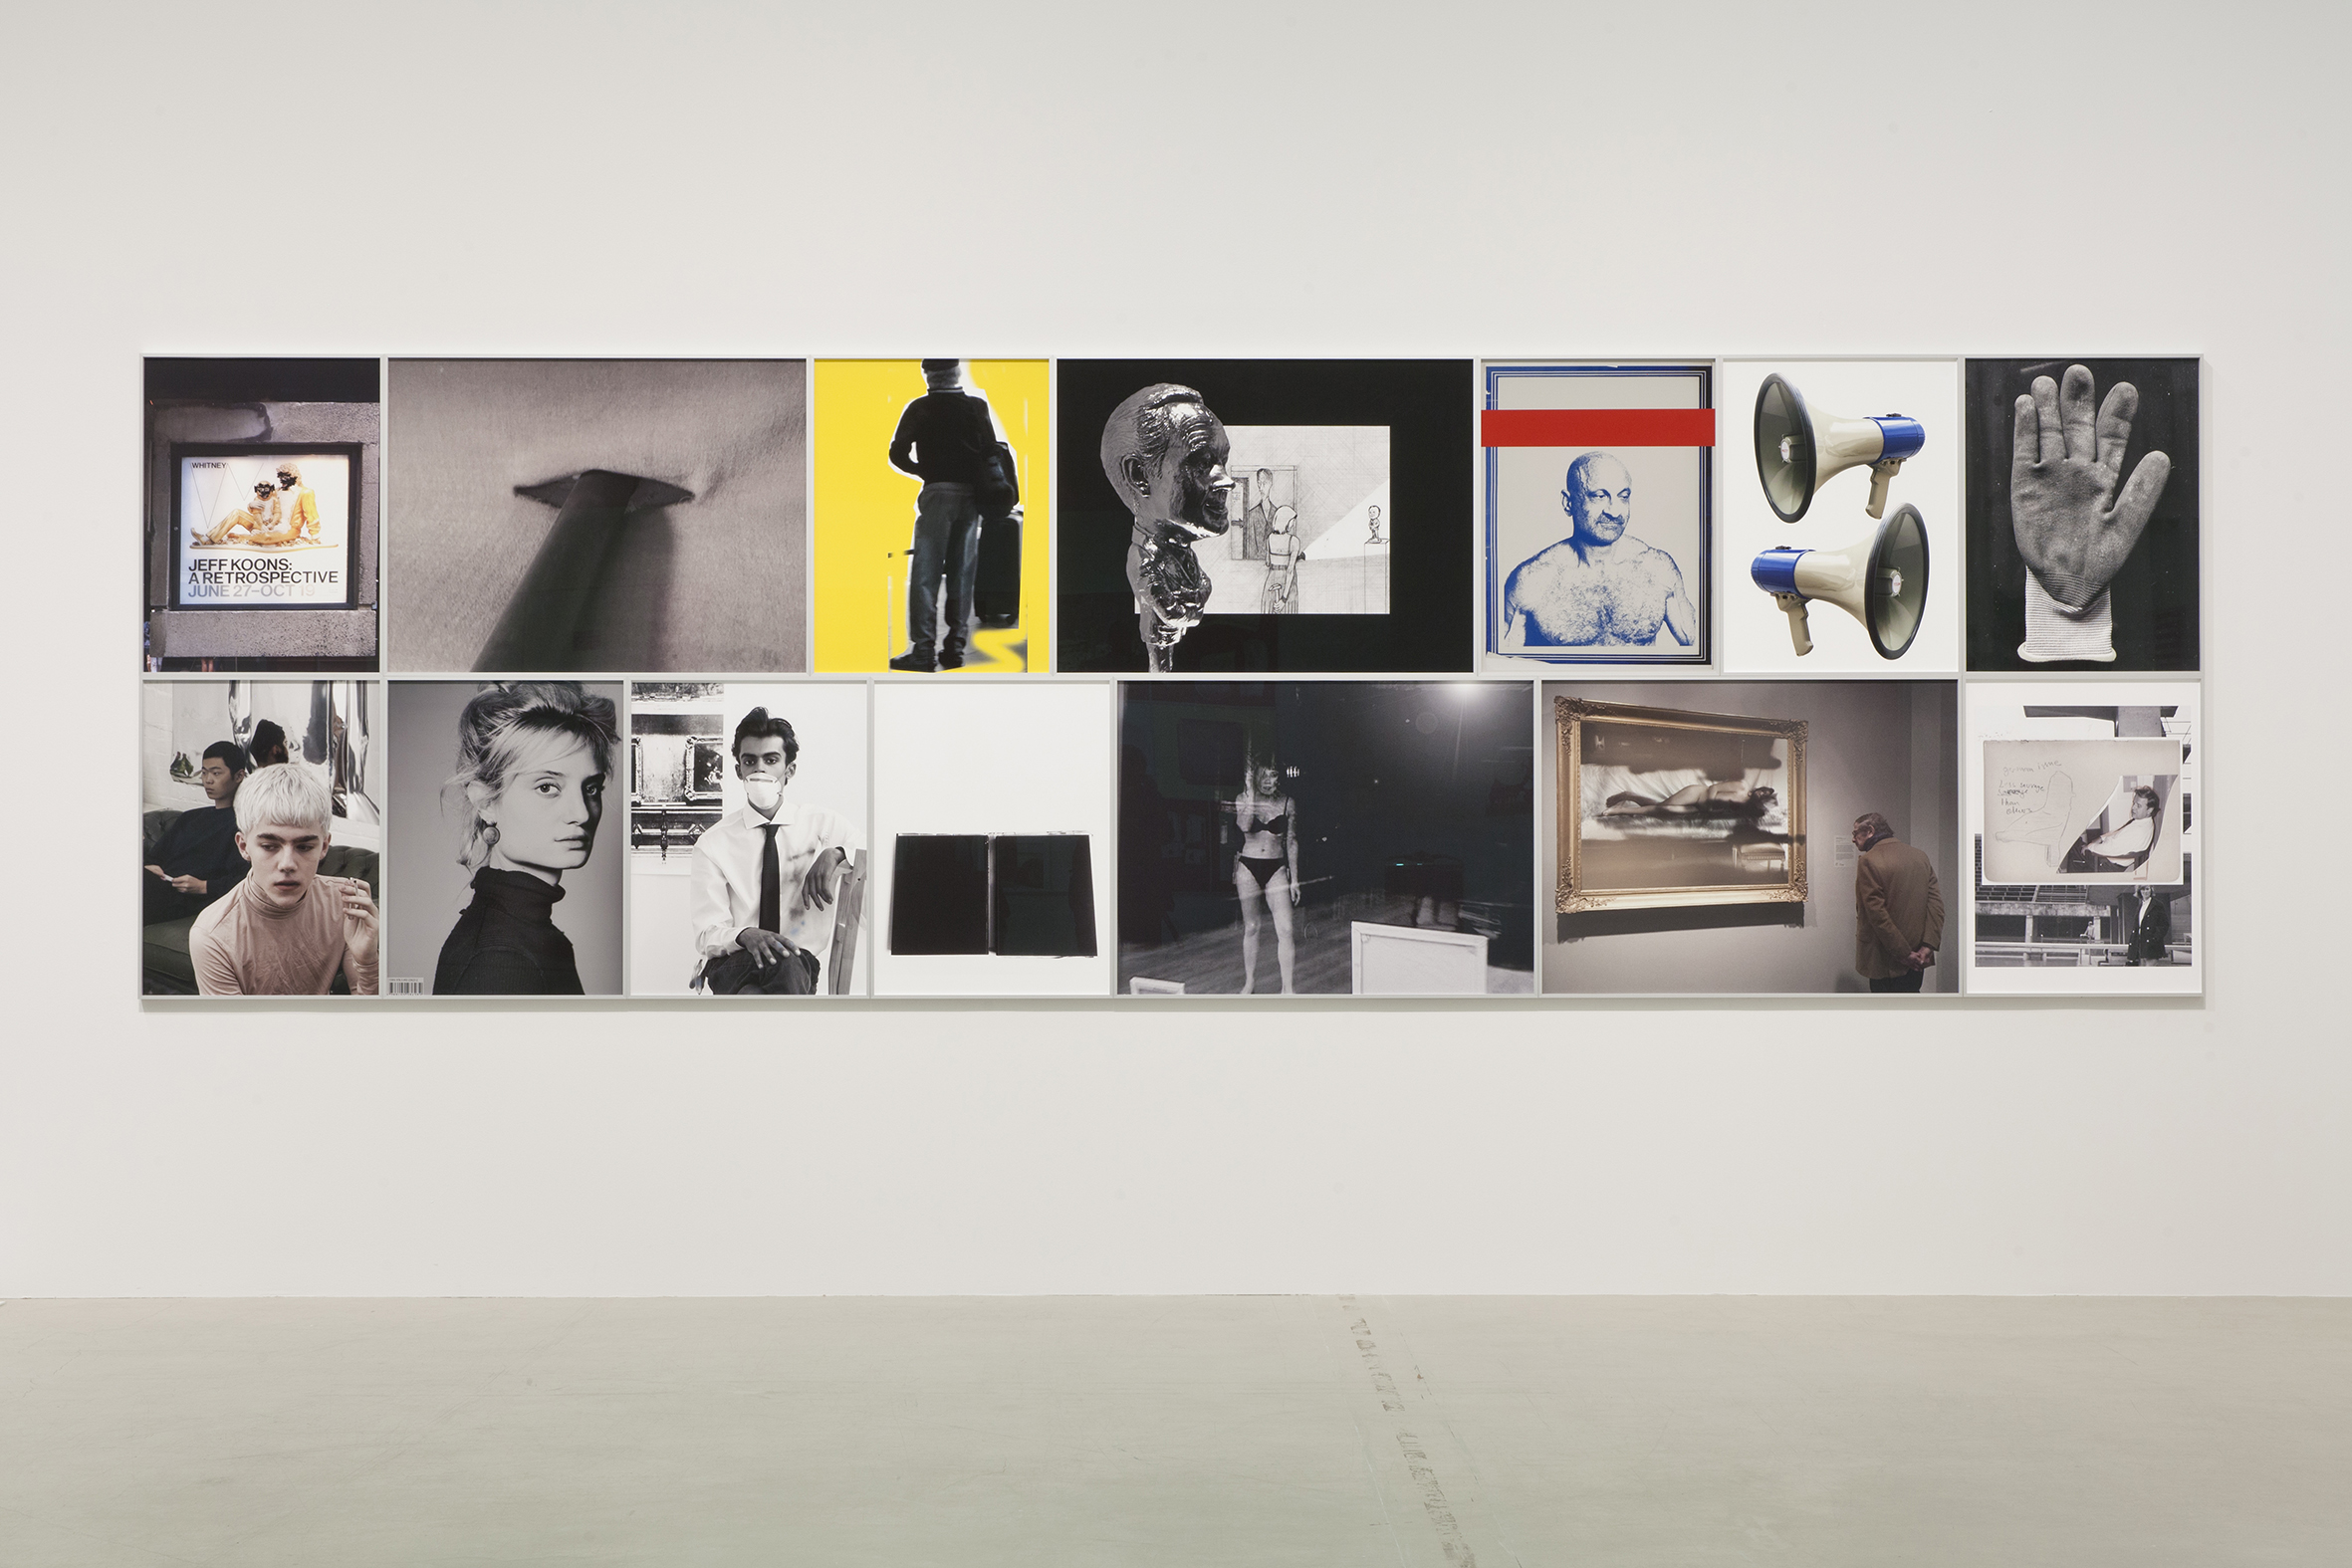 Rosemarie Trockel is showing at the Moderna Museet until 3 March